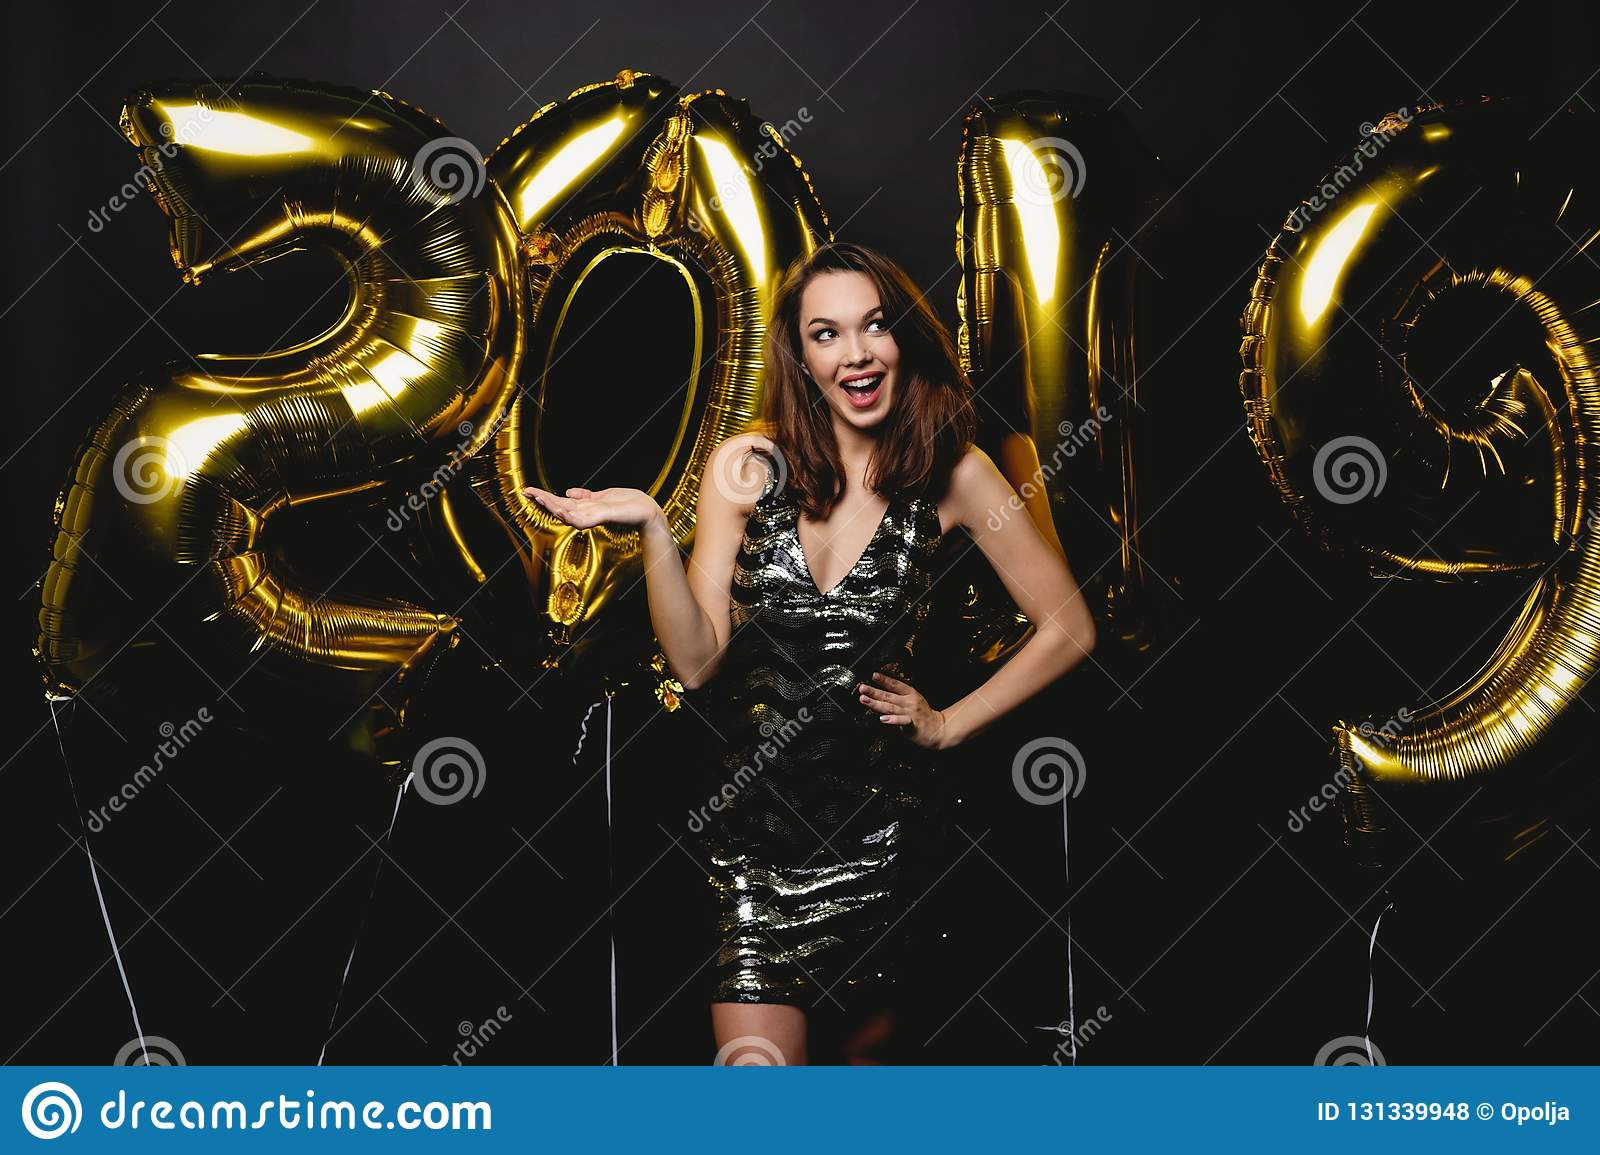 New Year. Woman With Balloons Celebrating At Party. Portrait Of Beautiful Smiling Girl In Shiny Dress Throwing Confetti